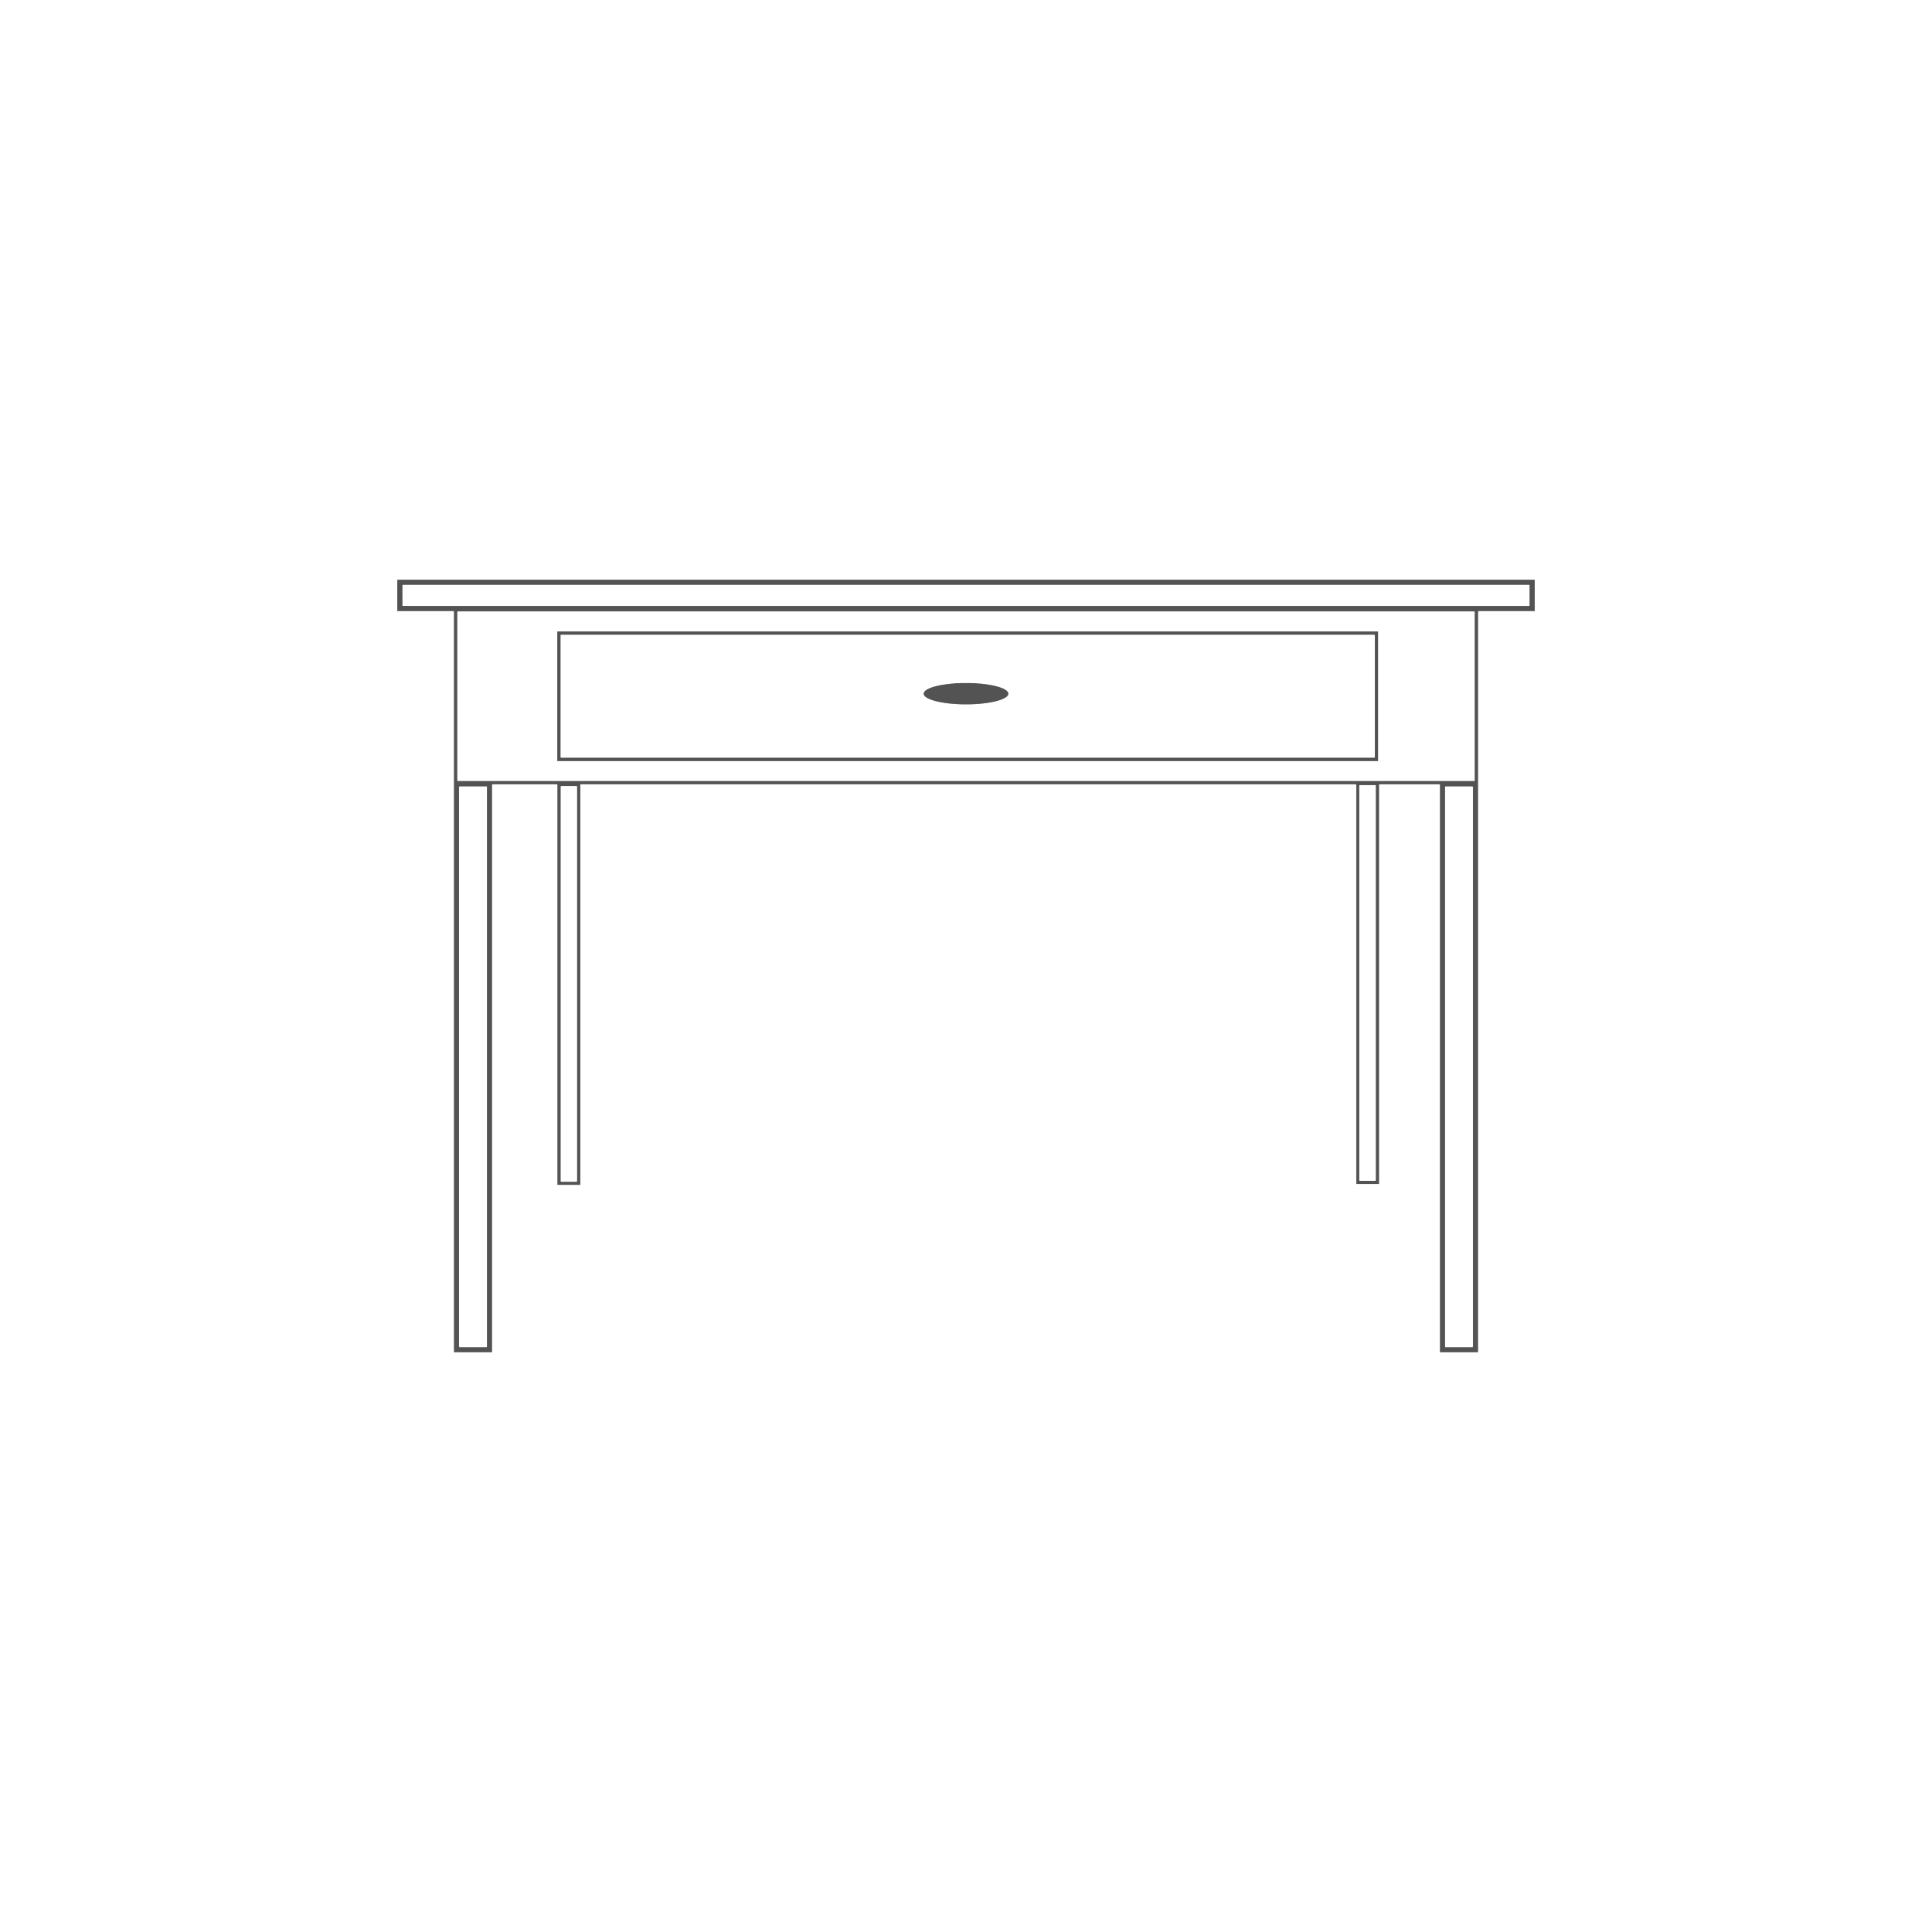 table outline-01.png